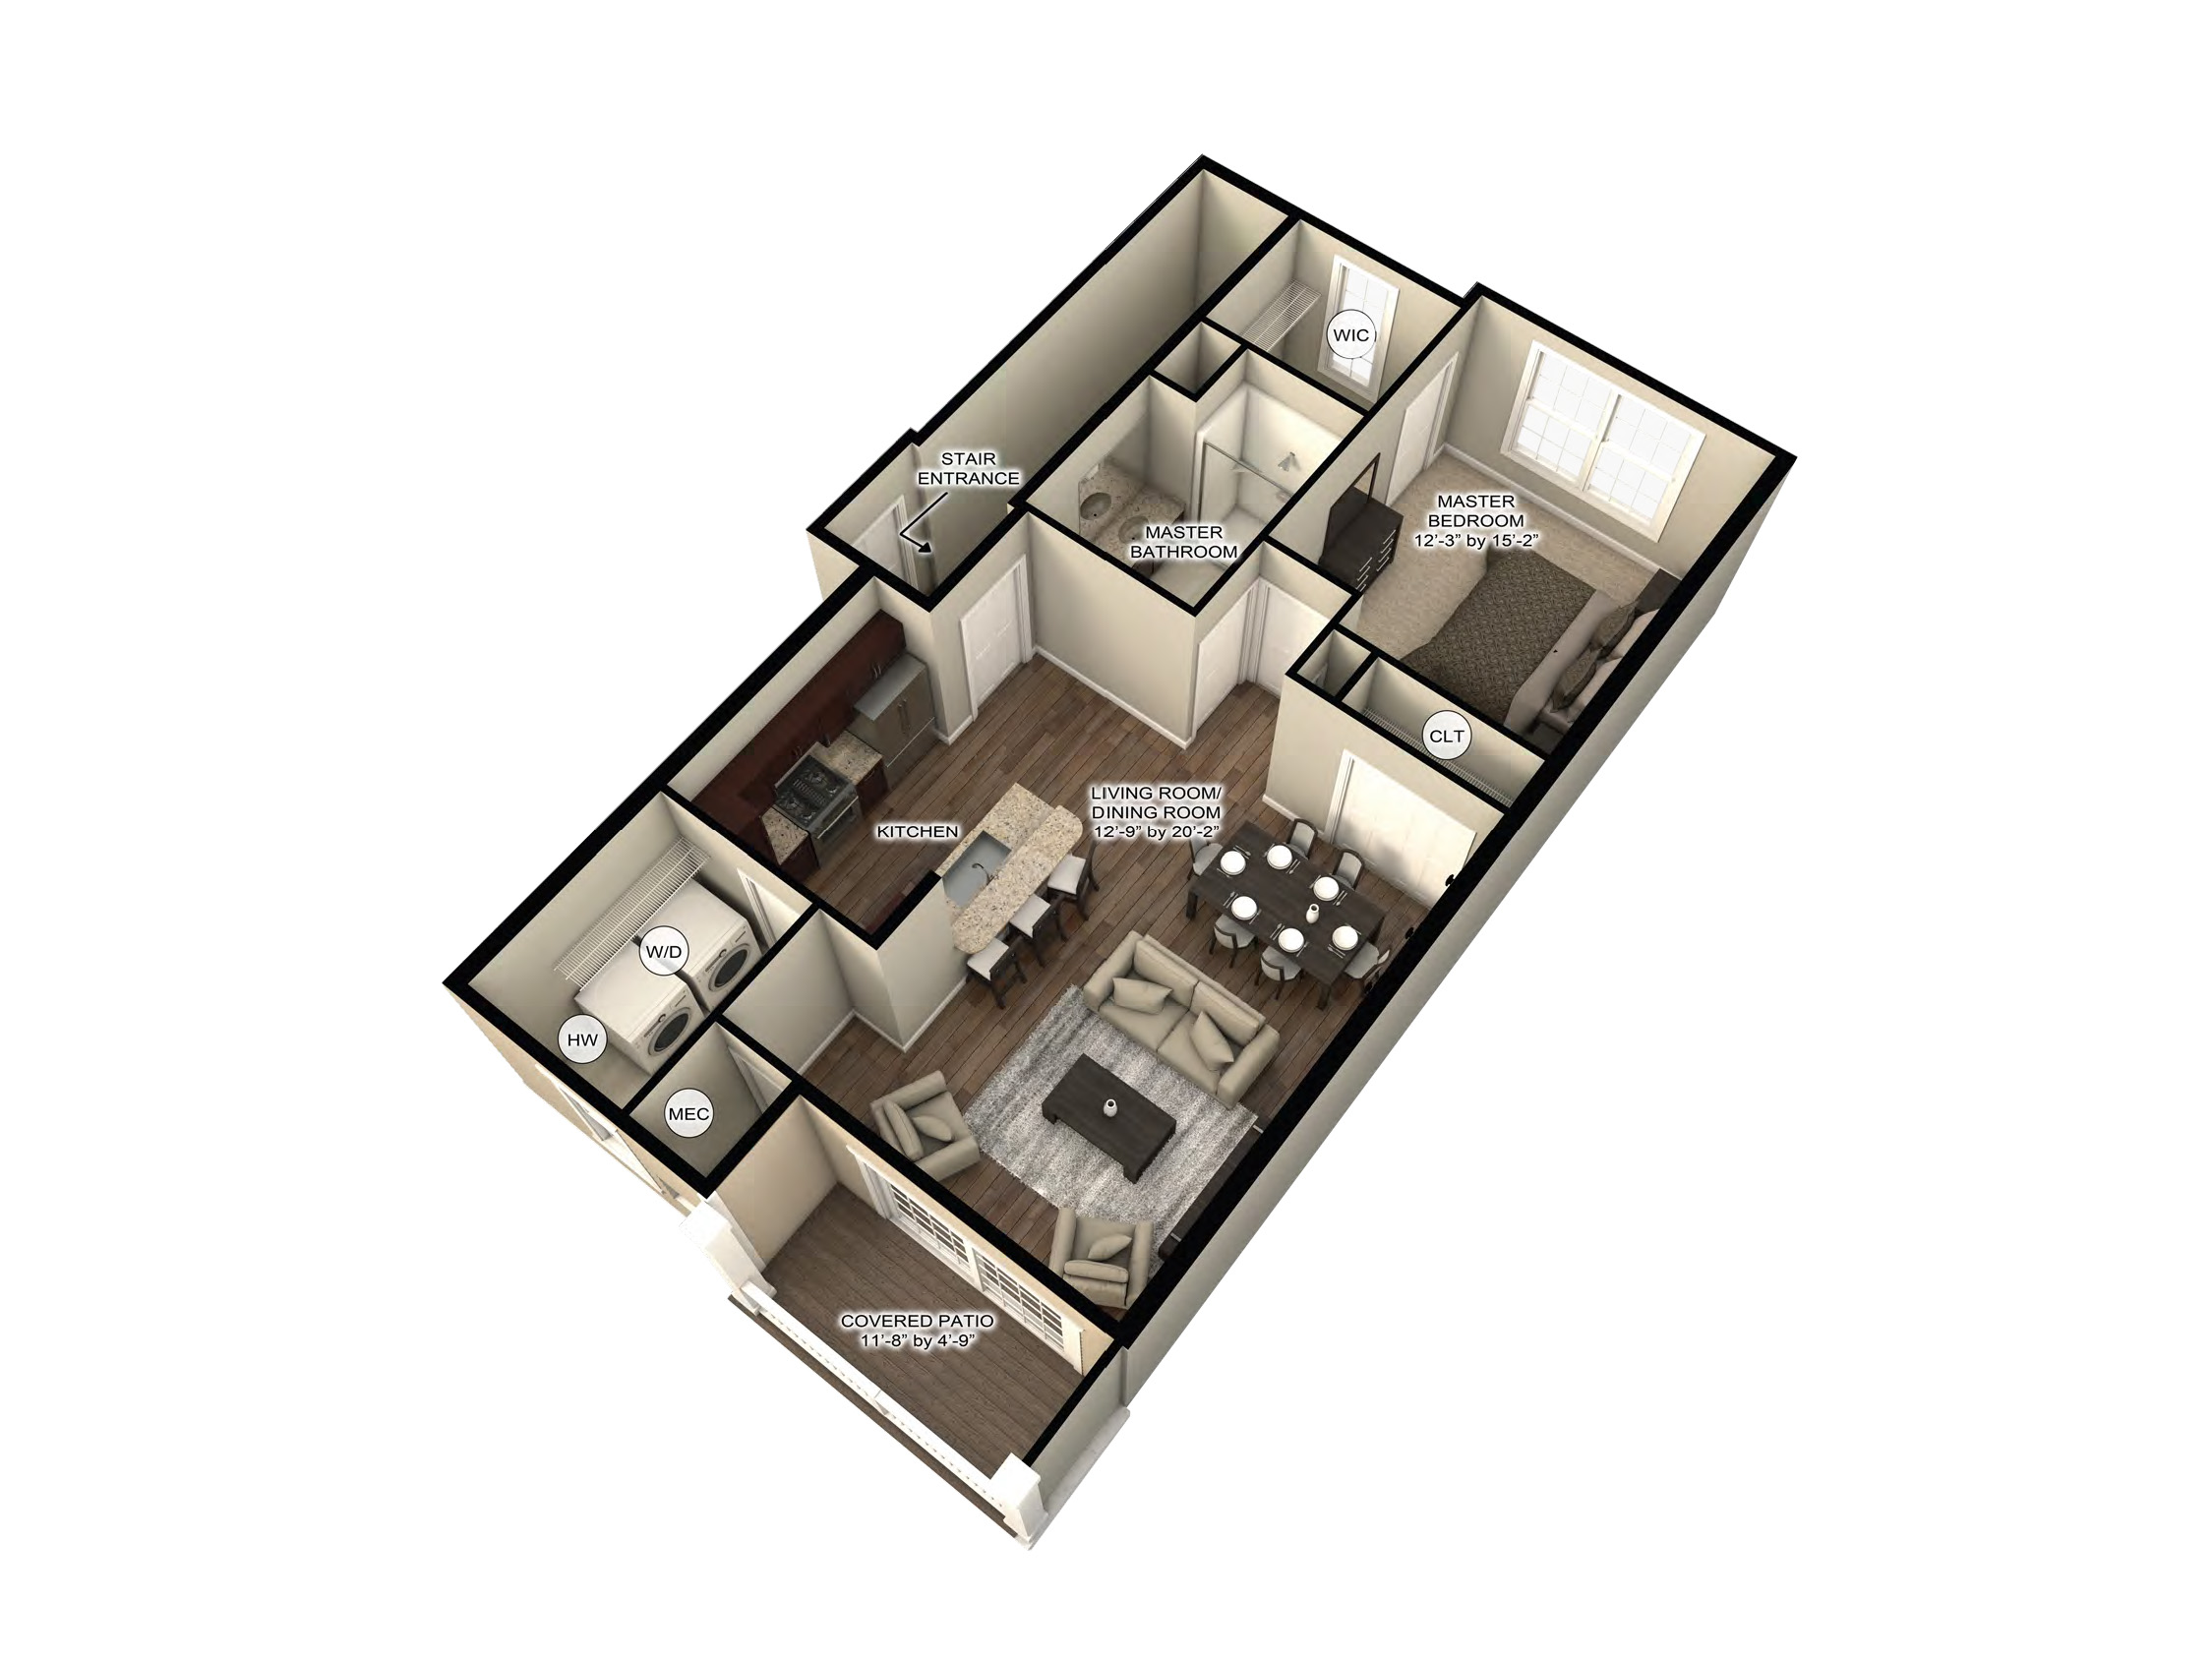 apartment floor plans Rochester, NY